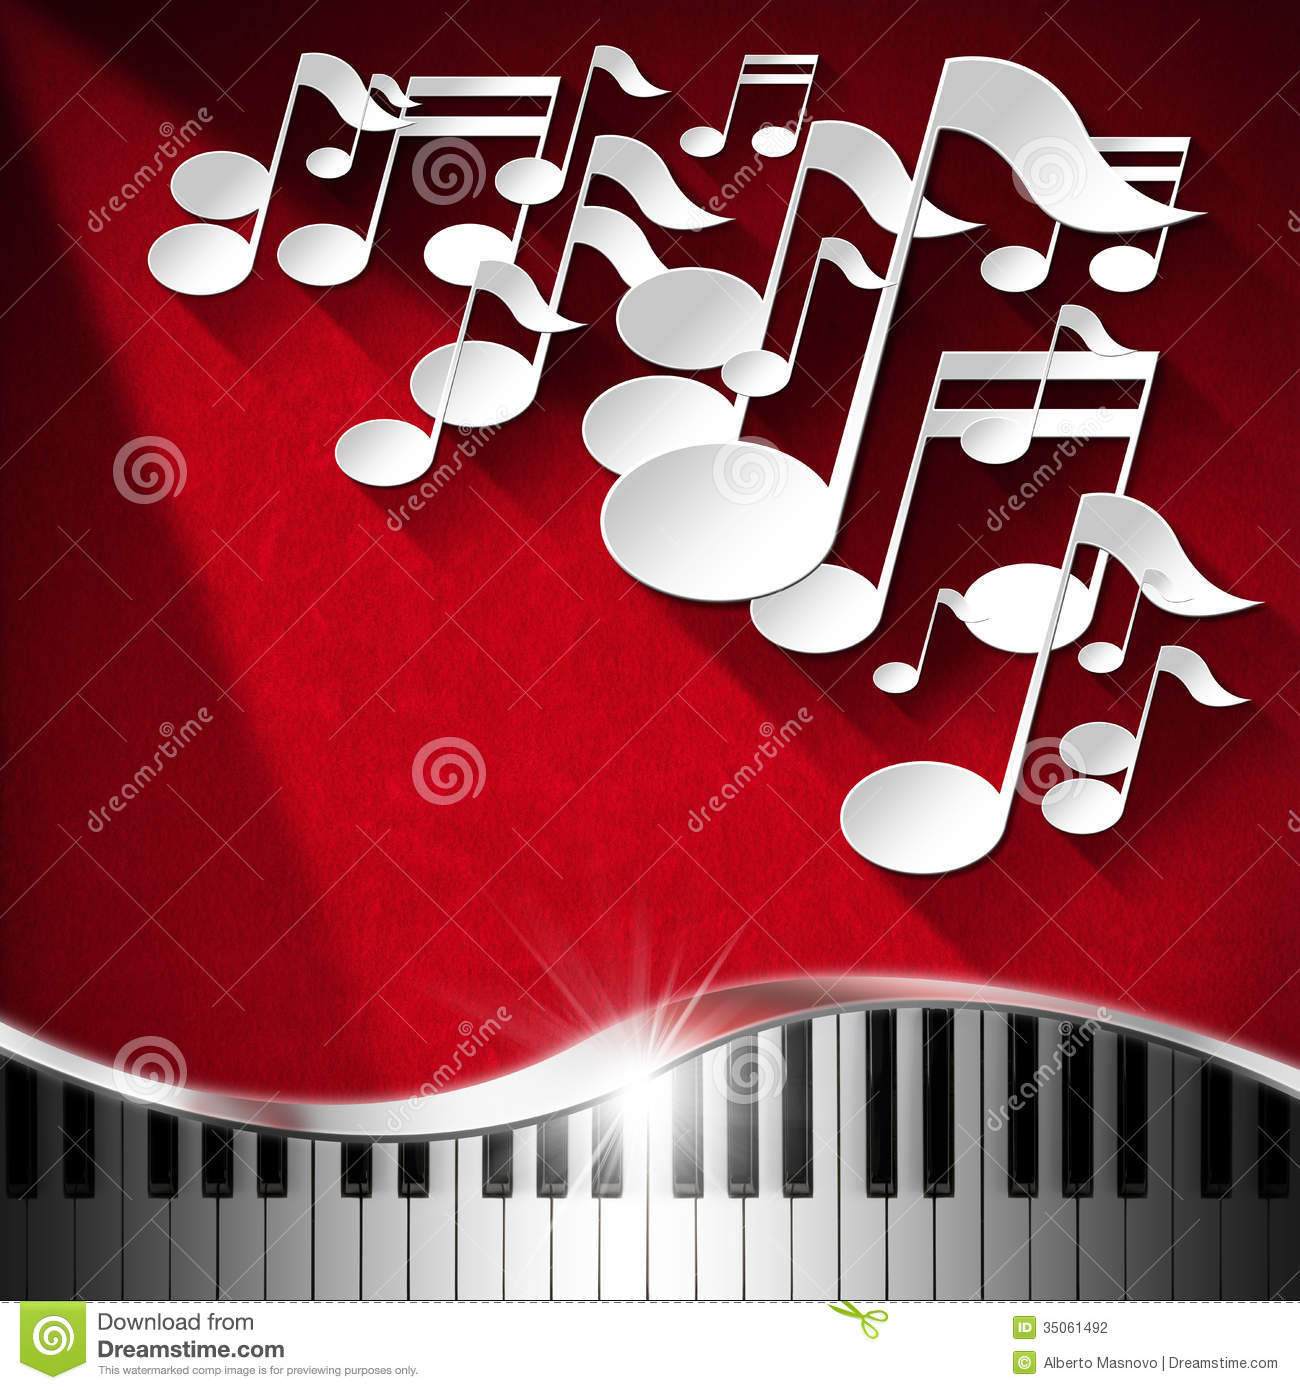 White musical notes and piano keyboard on red velvet background with